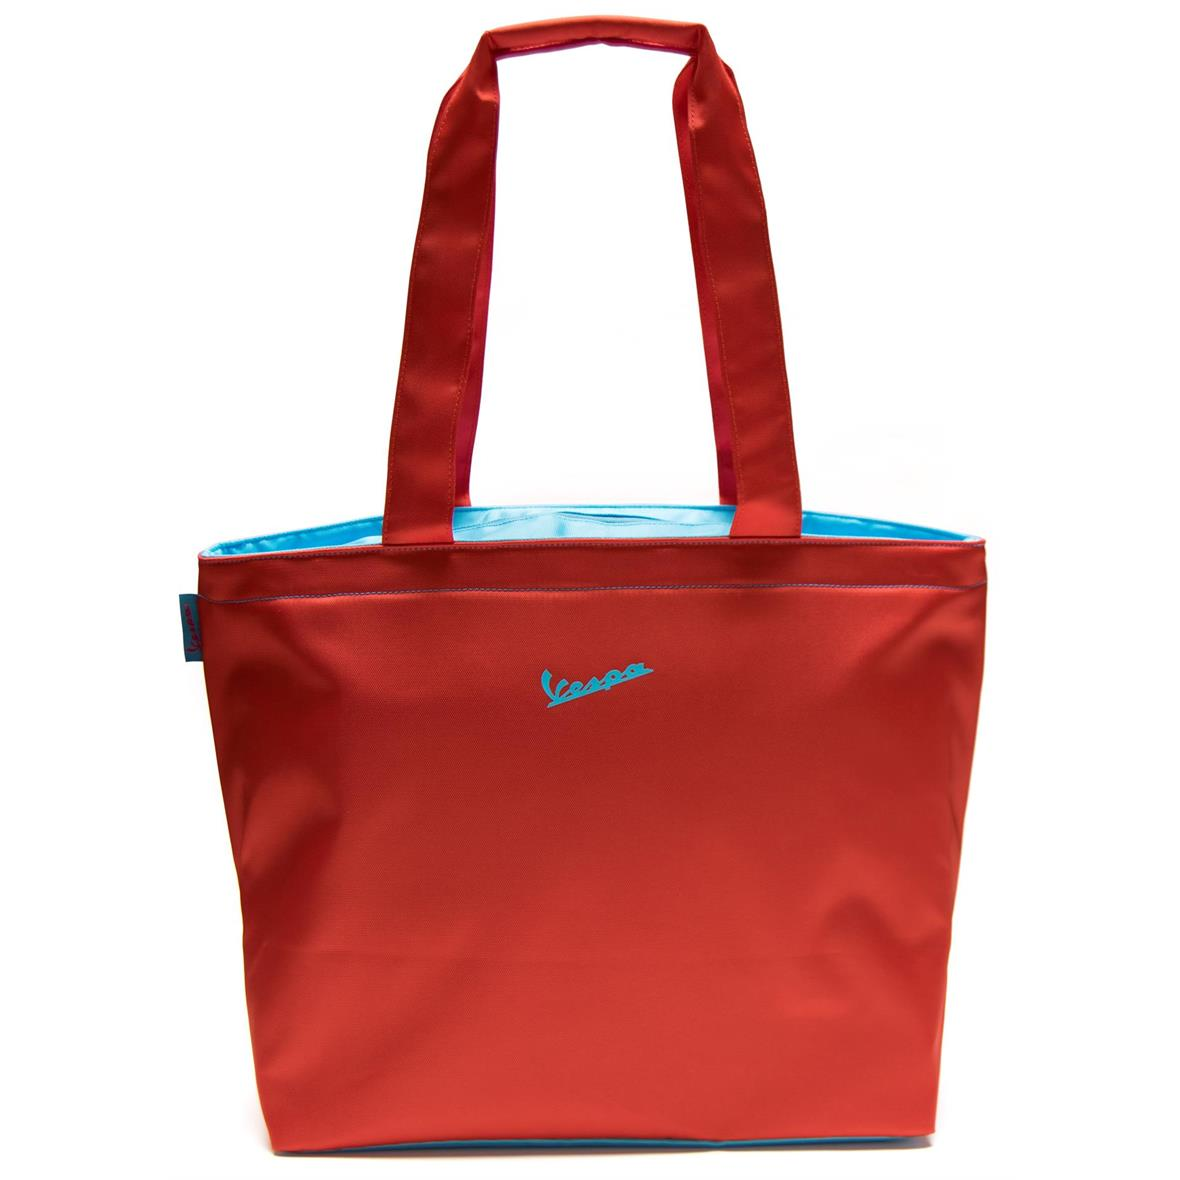 "Product Image for 'Shopping Bag FORME ""Vespa"" emblemTitle'"